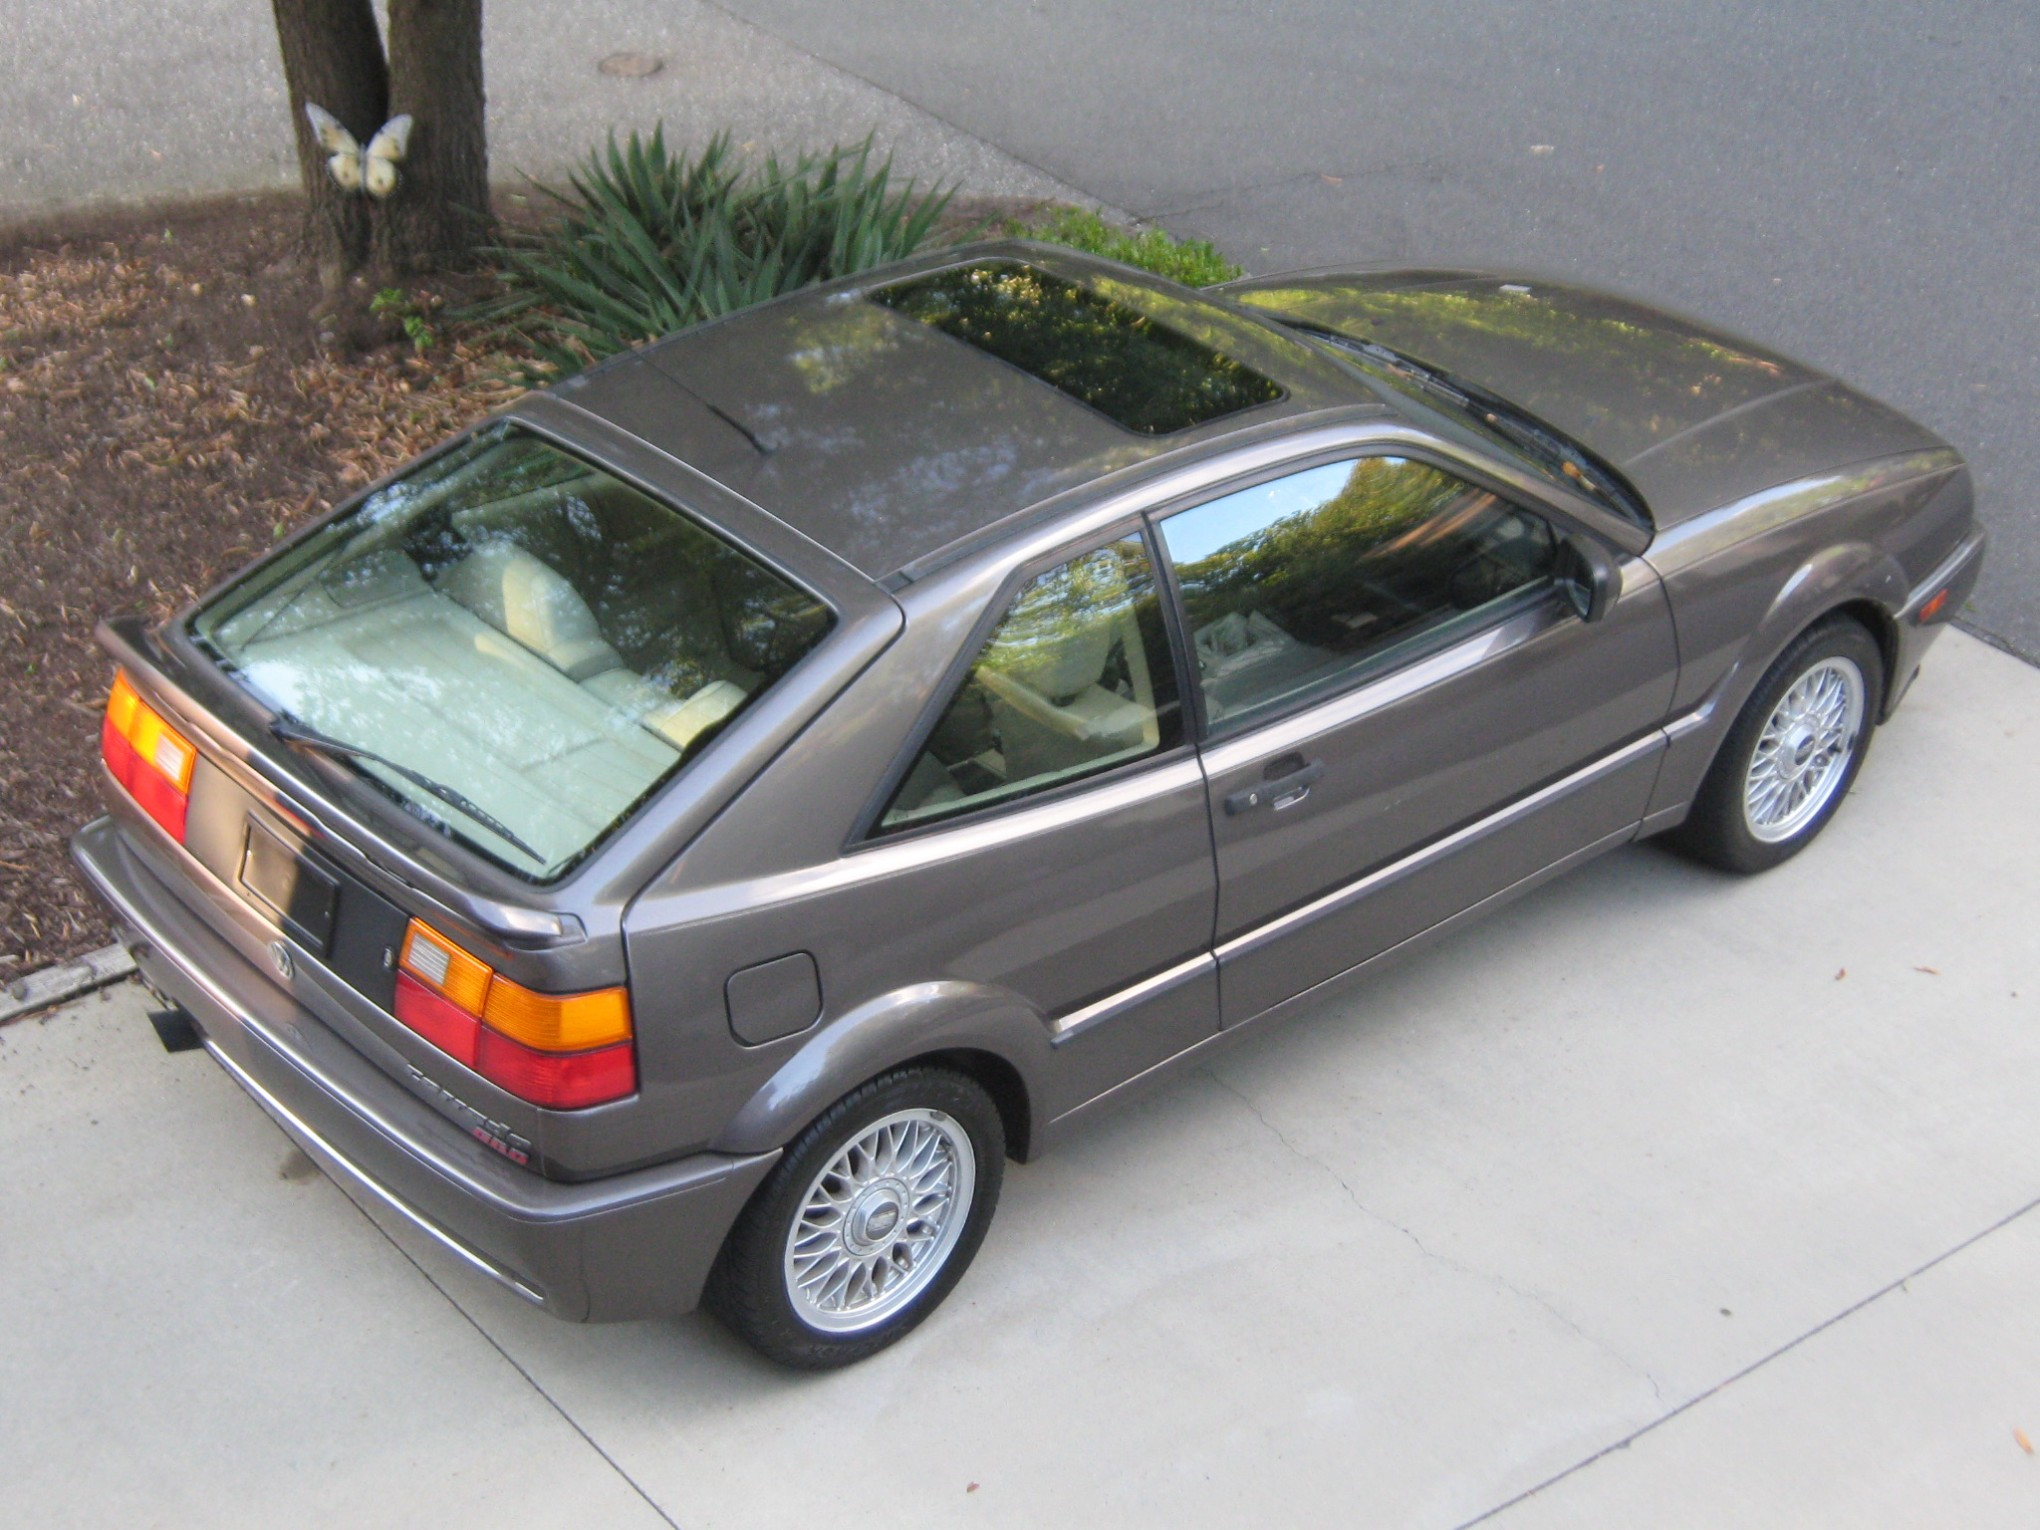 1991 VW Corrado G60 Toffee Gray metallic